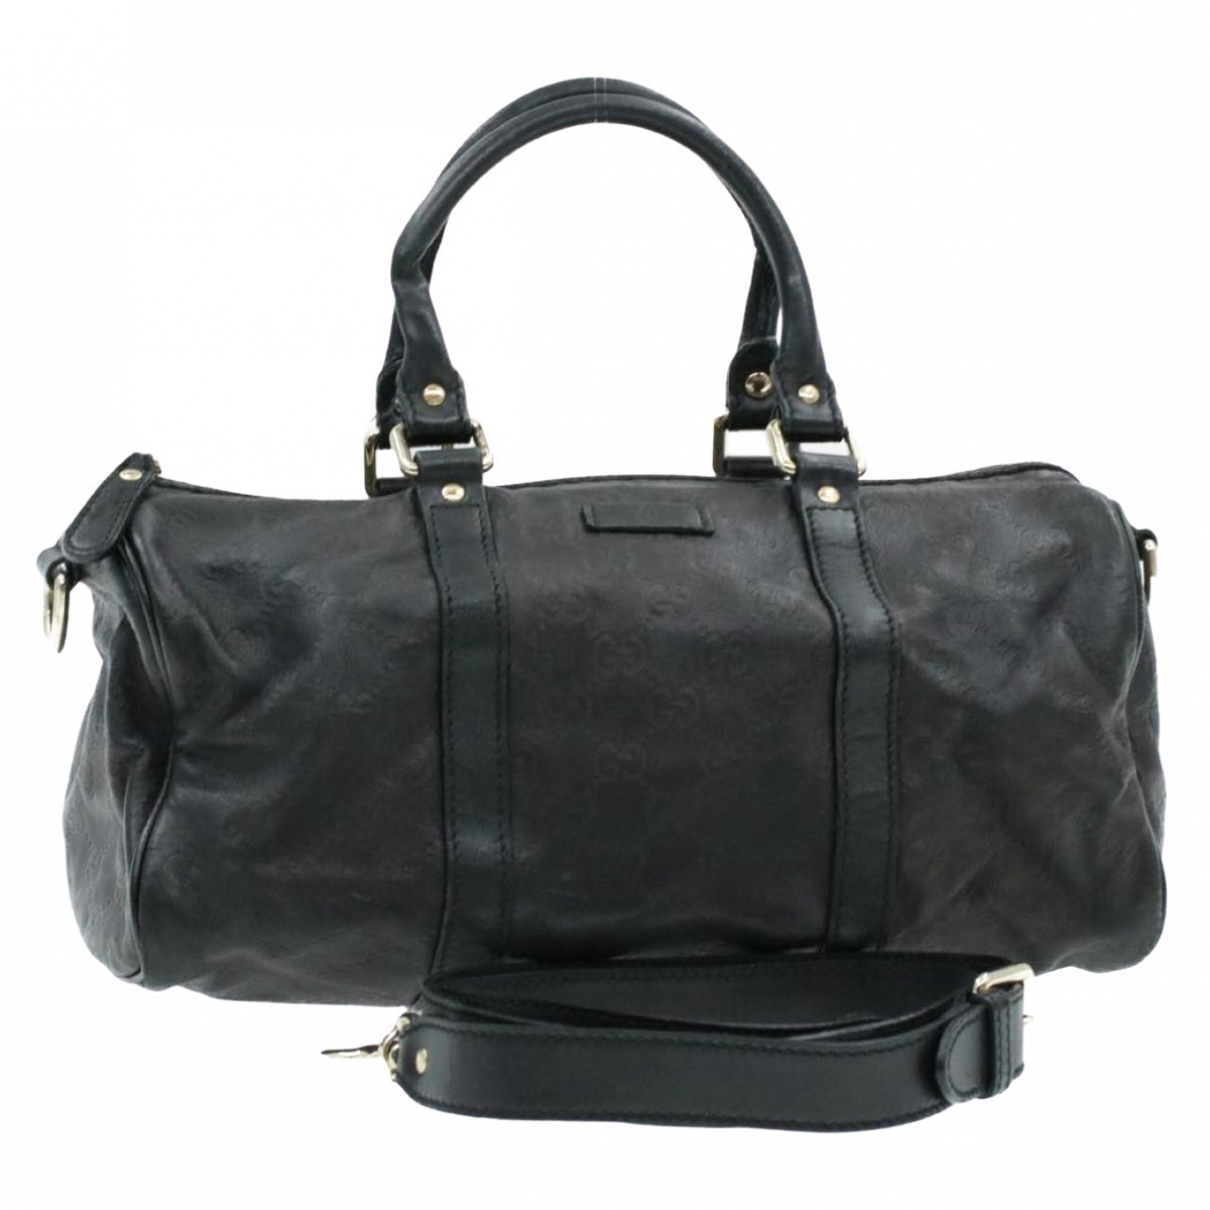 Gucci \N Black Leather handbag for Women \N